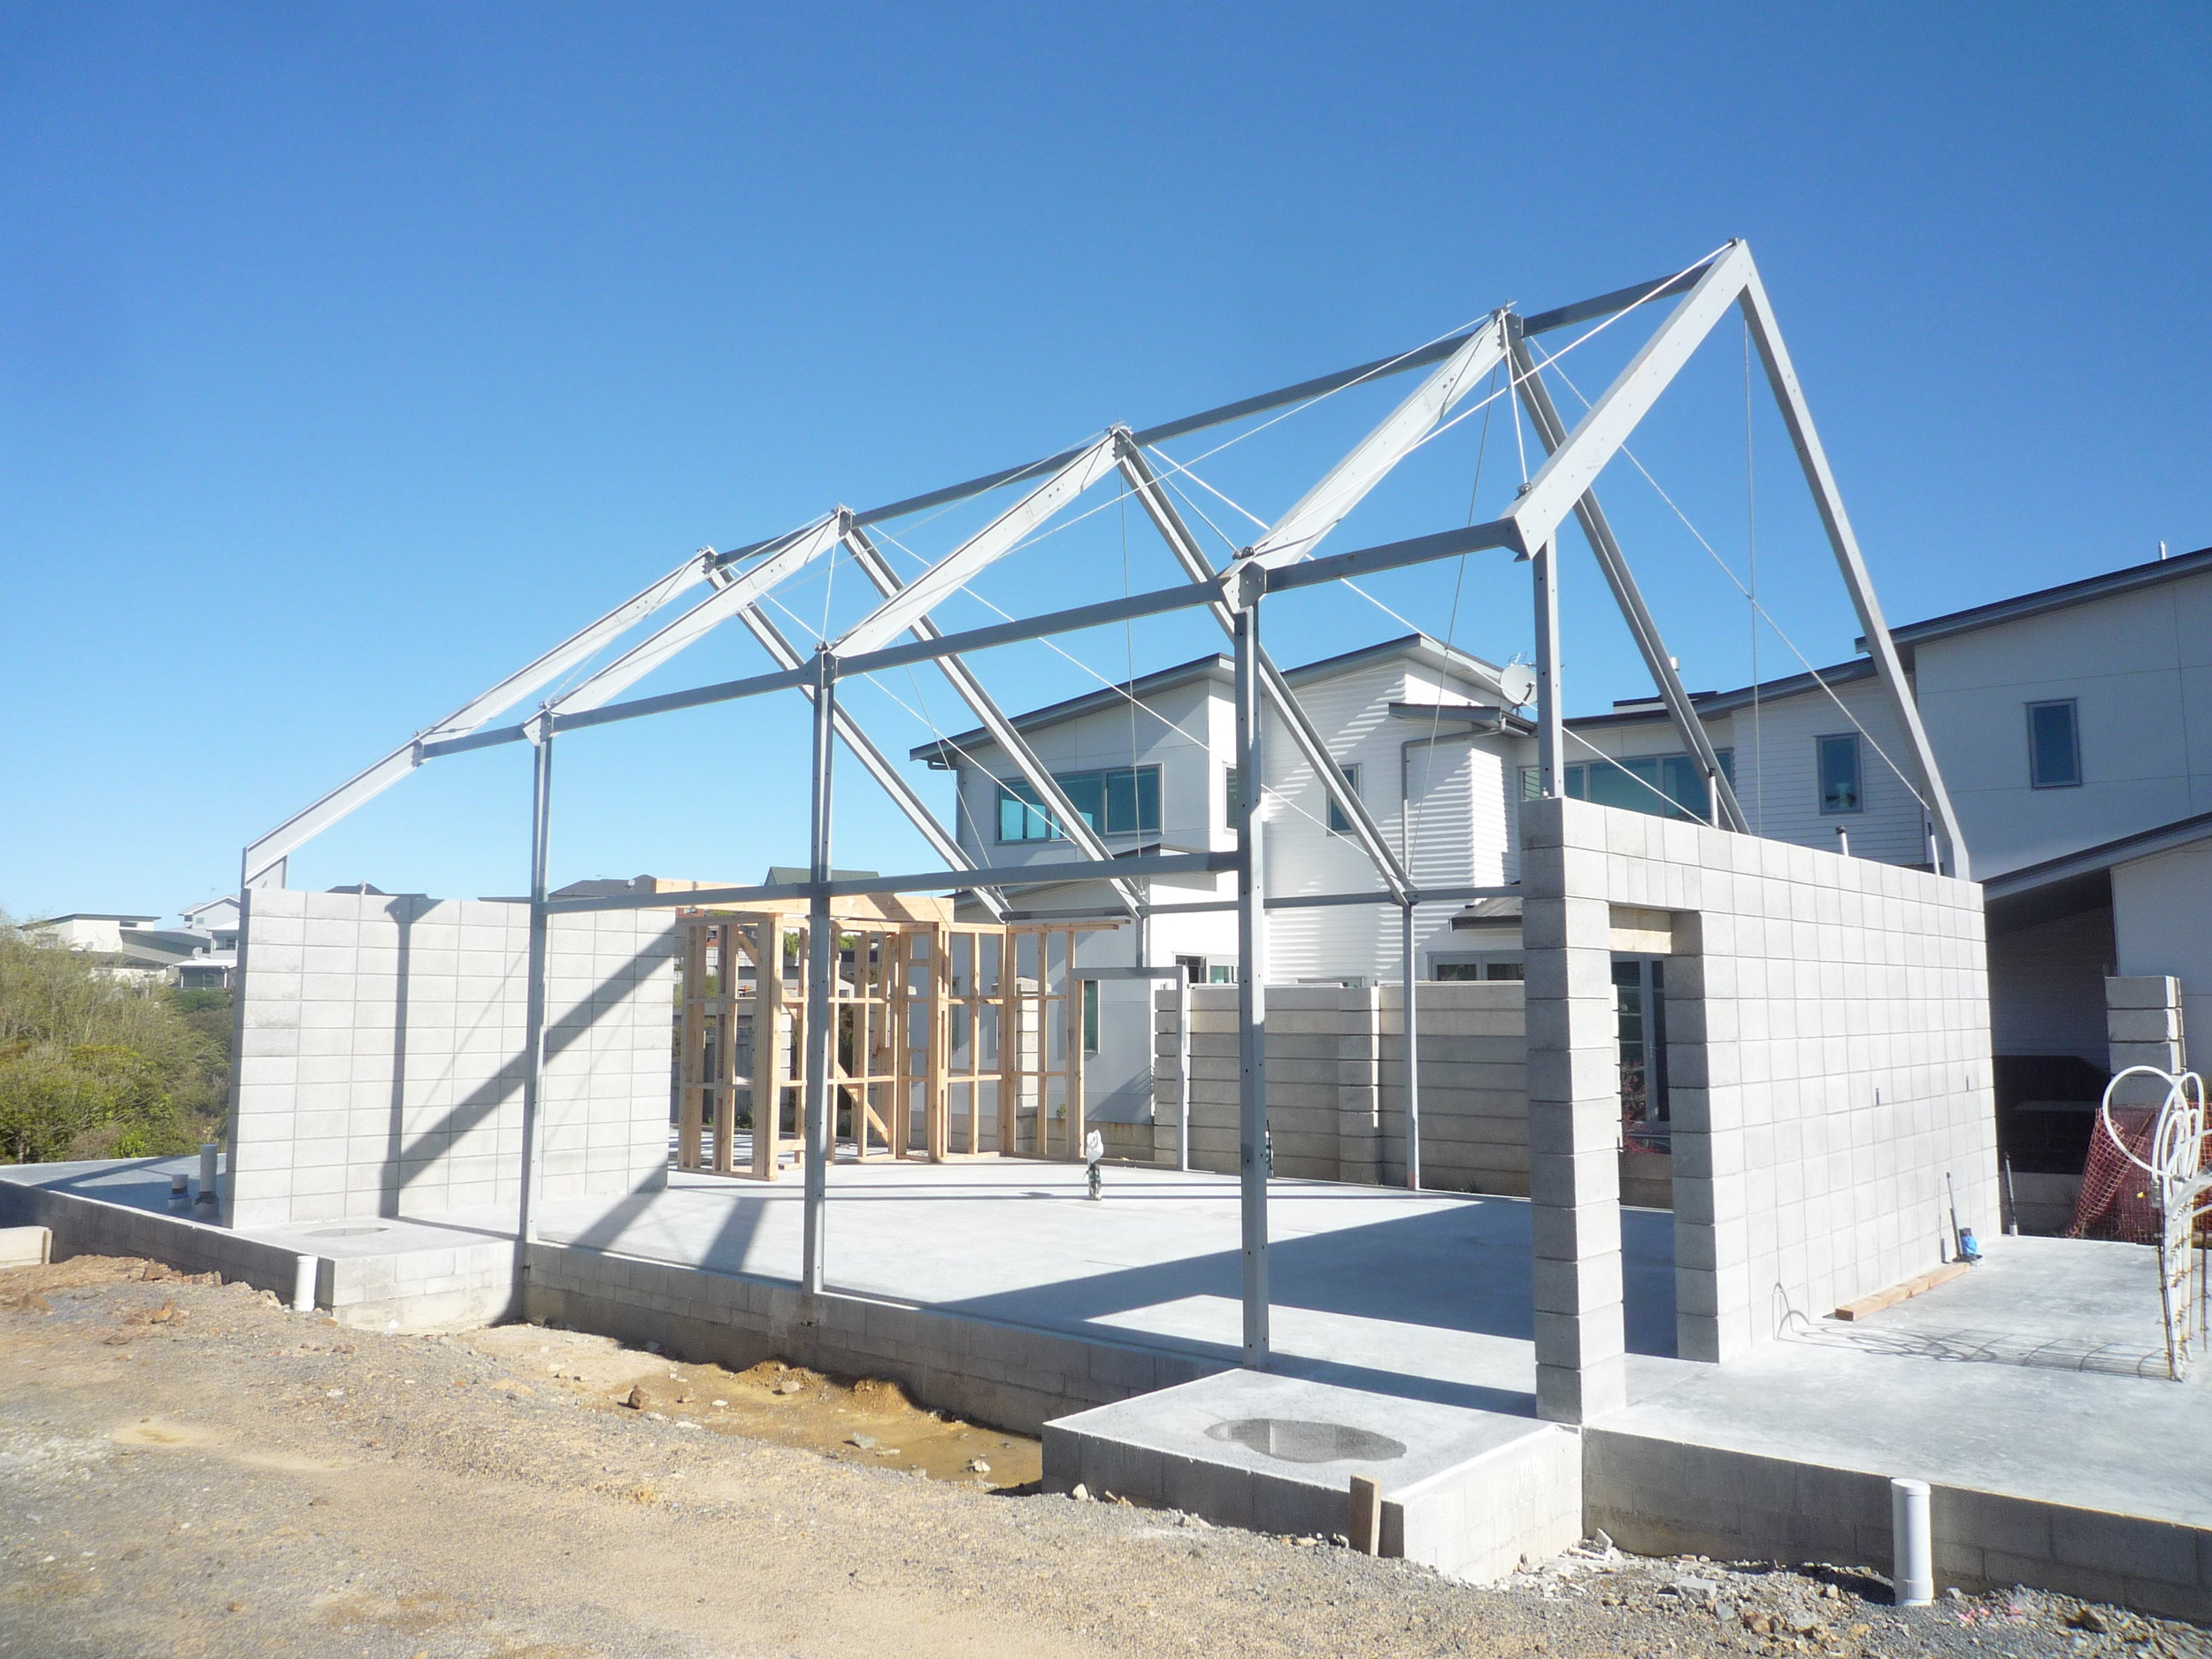 Mid-construction  - To create the large open spaces and high ceilings steel portal frames were used.